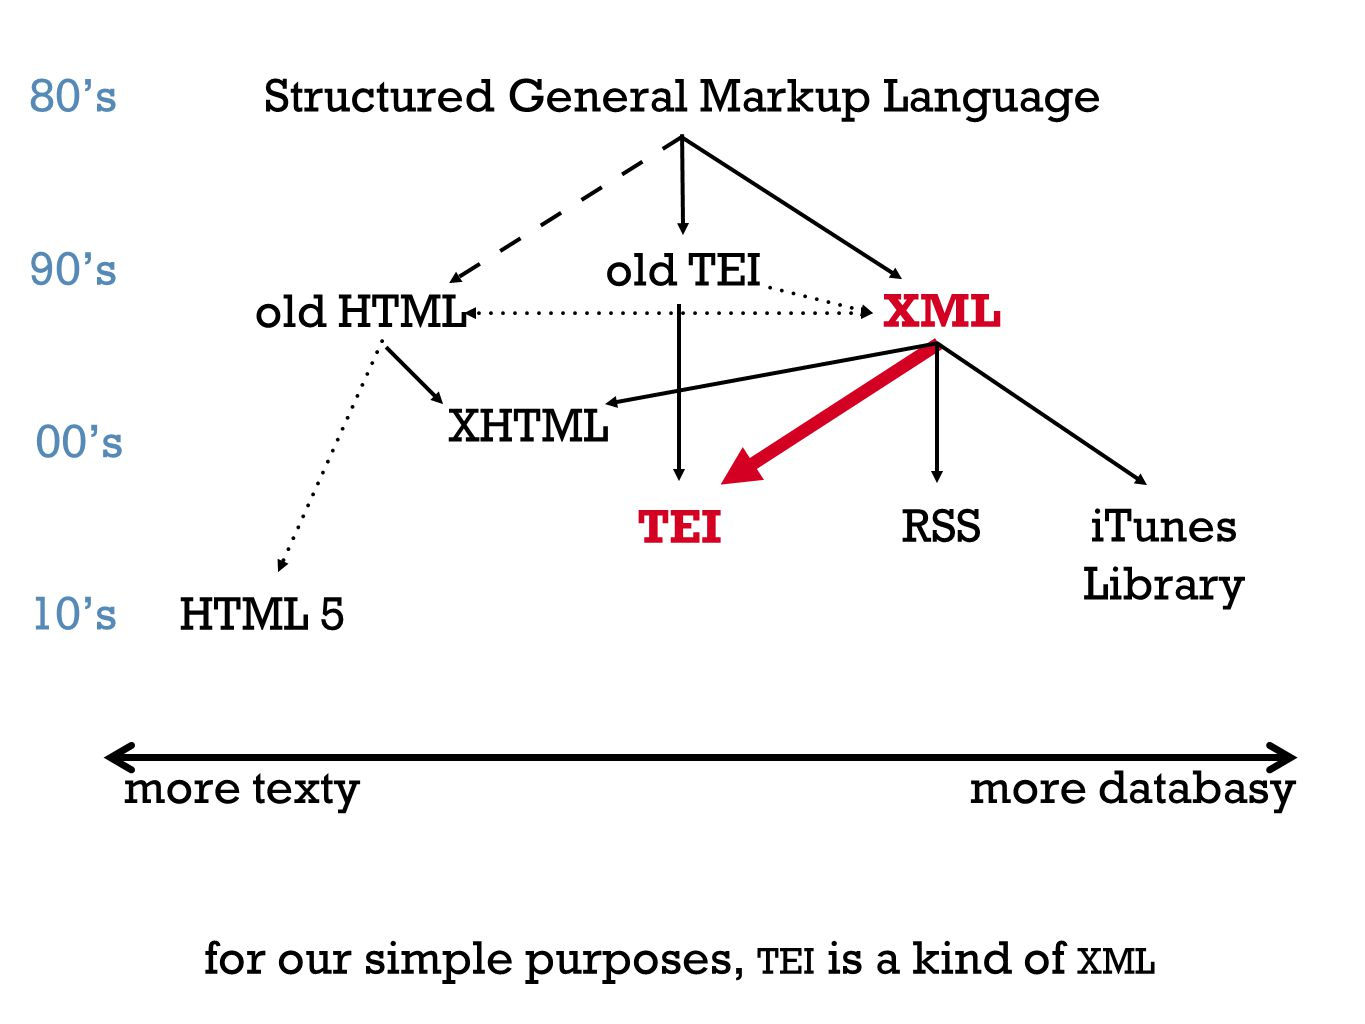 Structured General Markup Language old HTML XML HTML 5 TEI iTunes Library RSS more textymore databasy for our simple purposes, TEI is a kind of XML old TEI XHTML 80's 90's 00's 10's